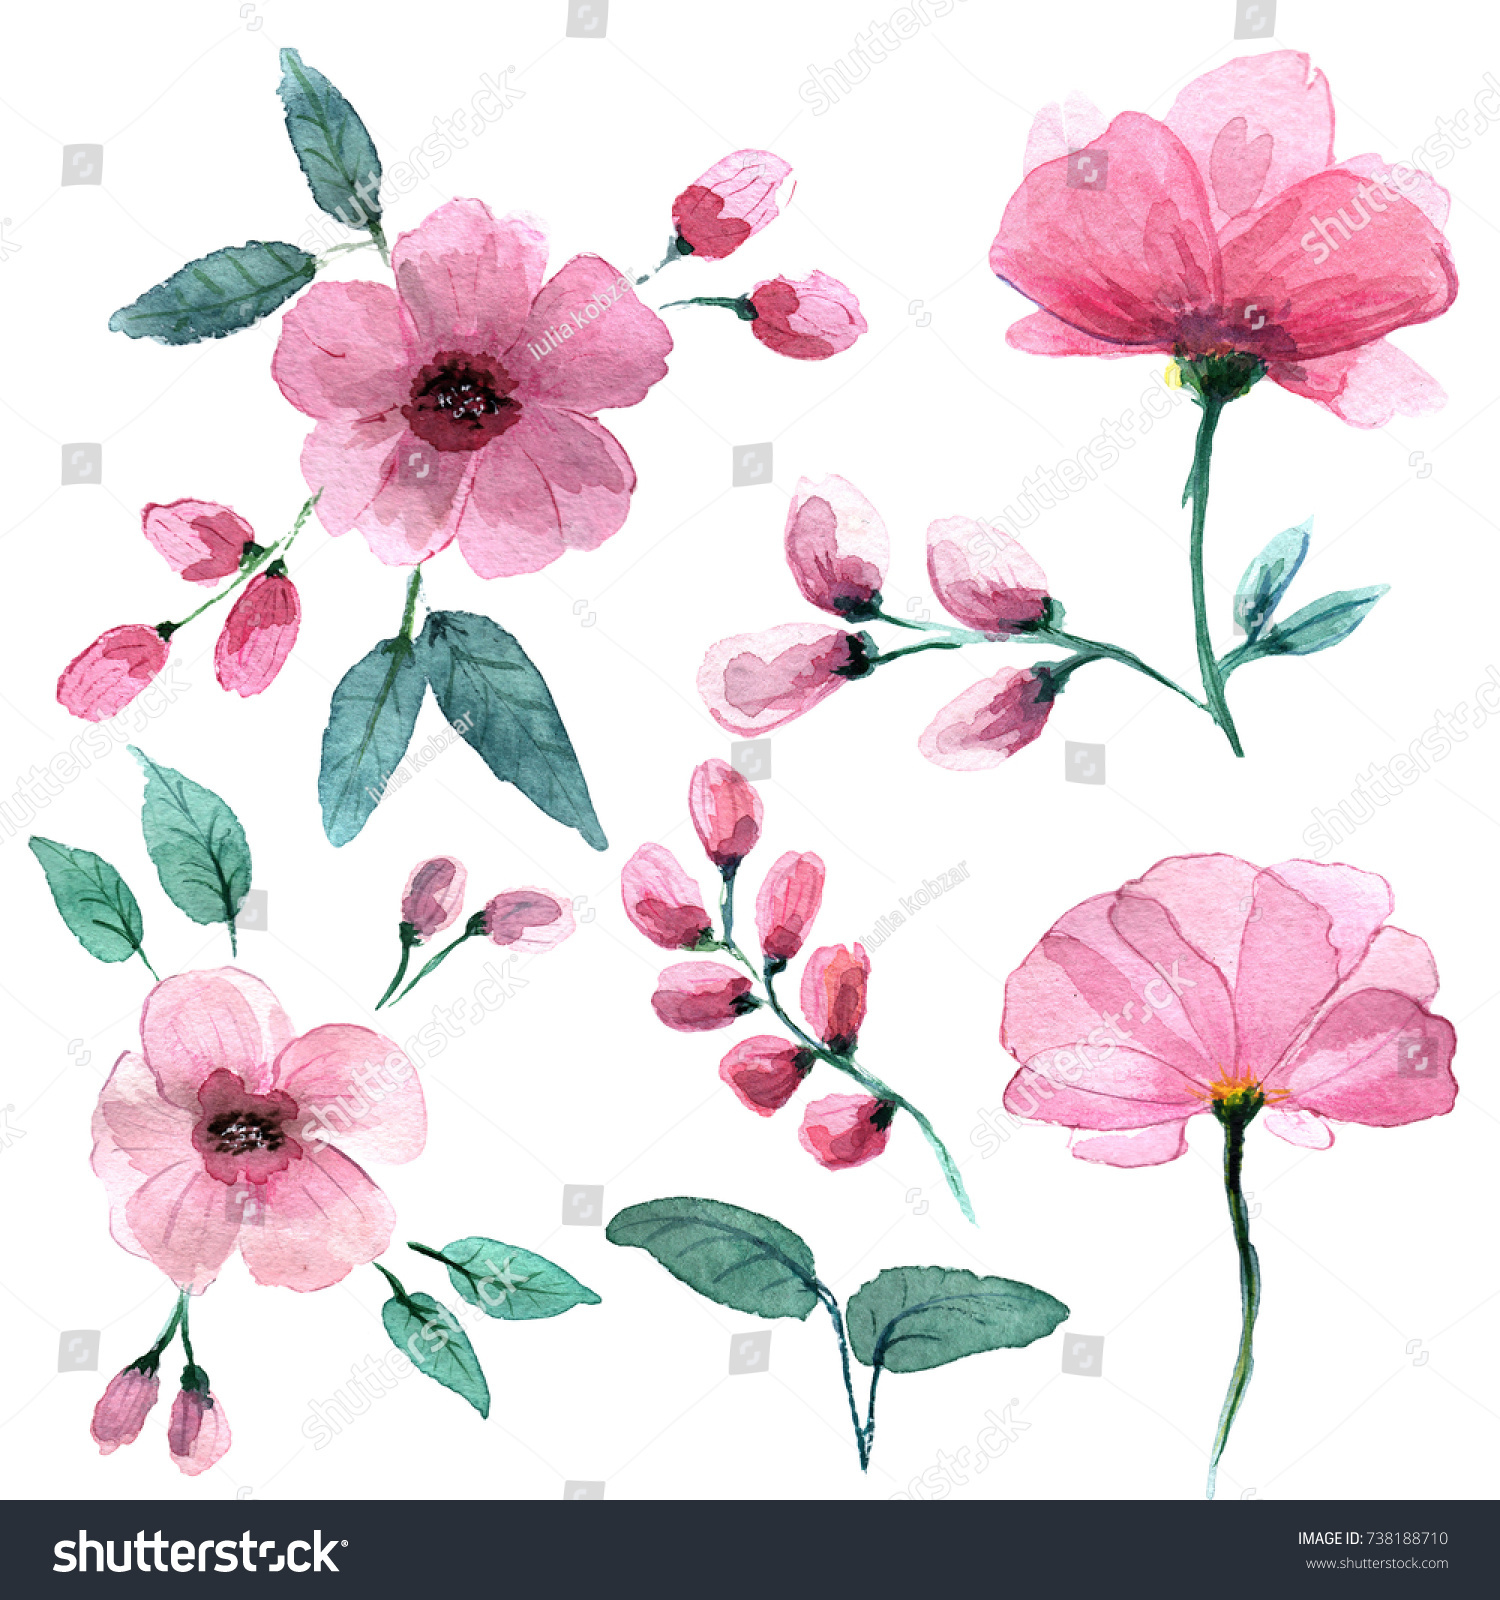 Delicate Pink Flowers Style Watercolors Stock Illustration 738188710